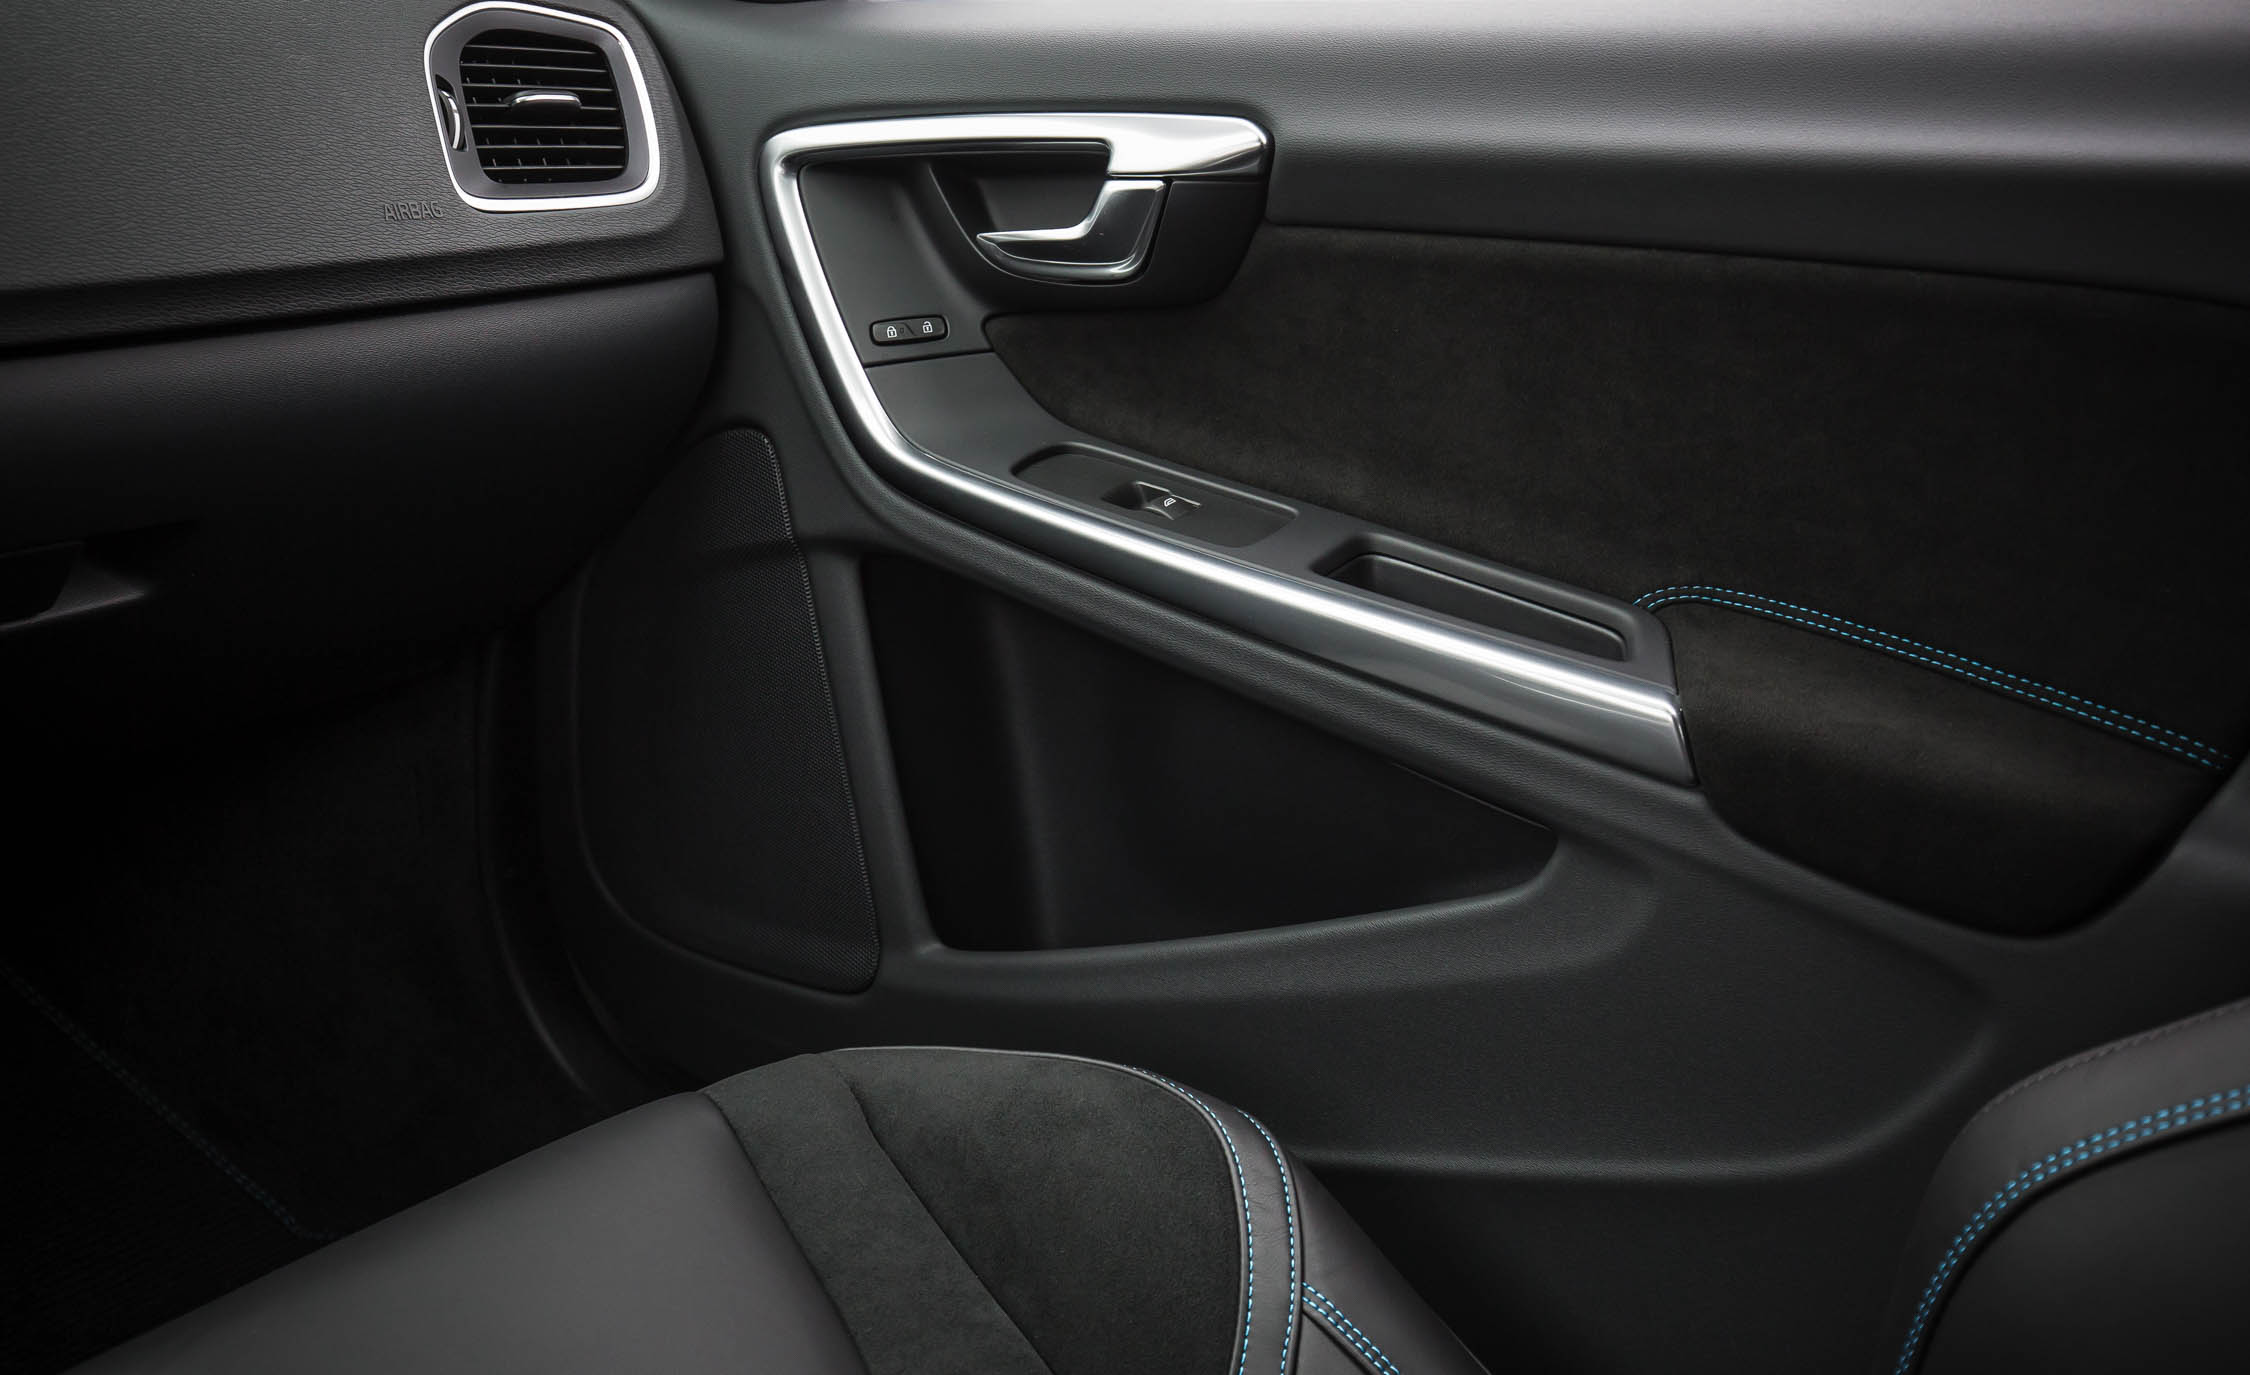 2017 Volvo V60 Polestar Interior View Door Trim Front (View 33 of 53)